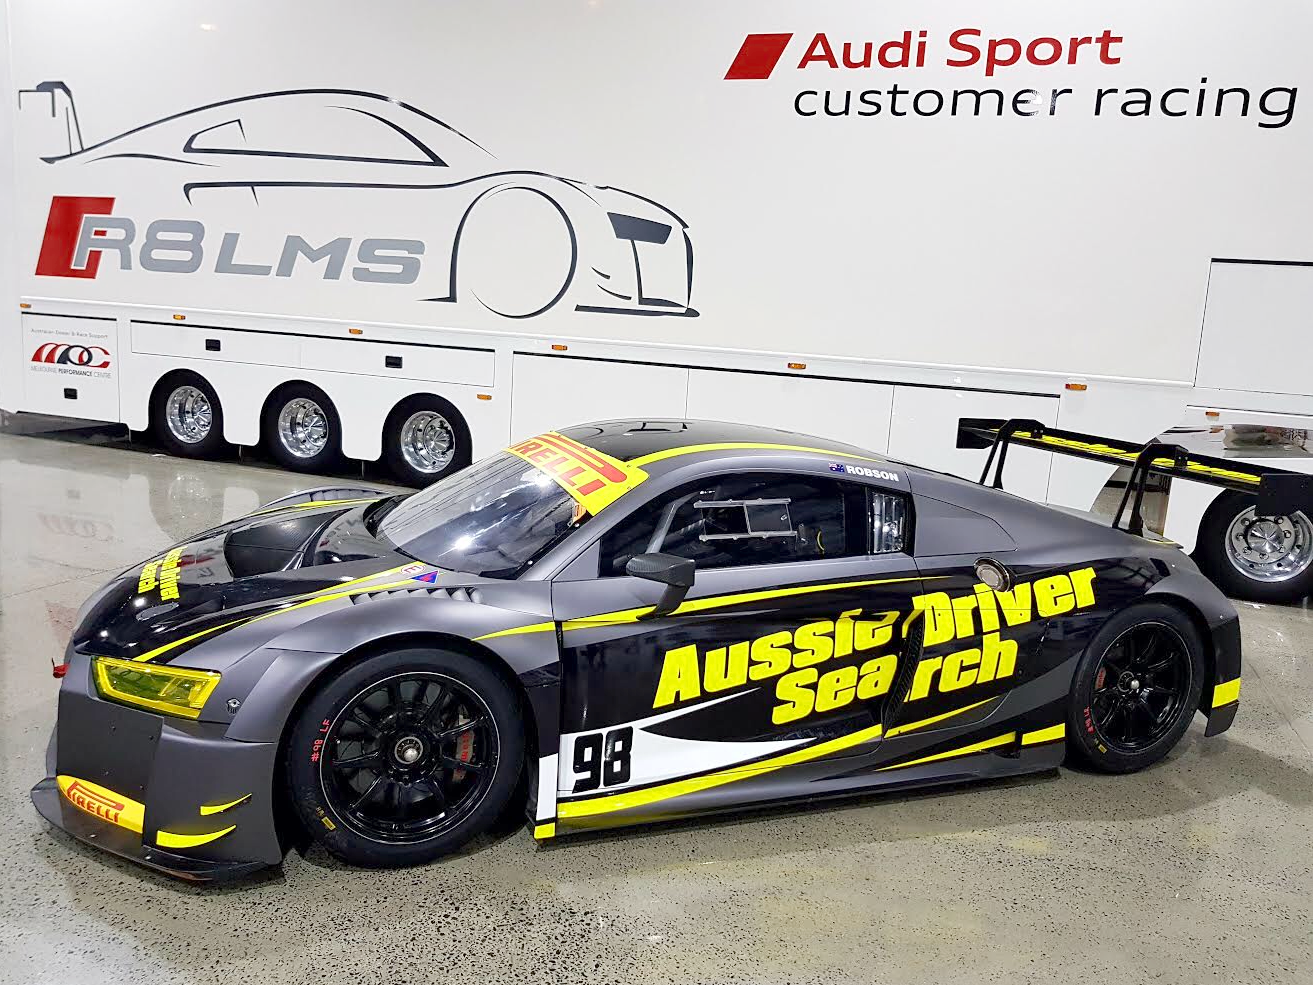 Aussie Driver Search Audi confirmed for Sandown start